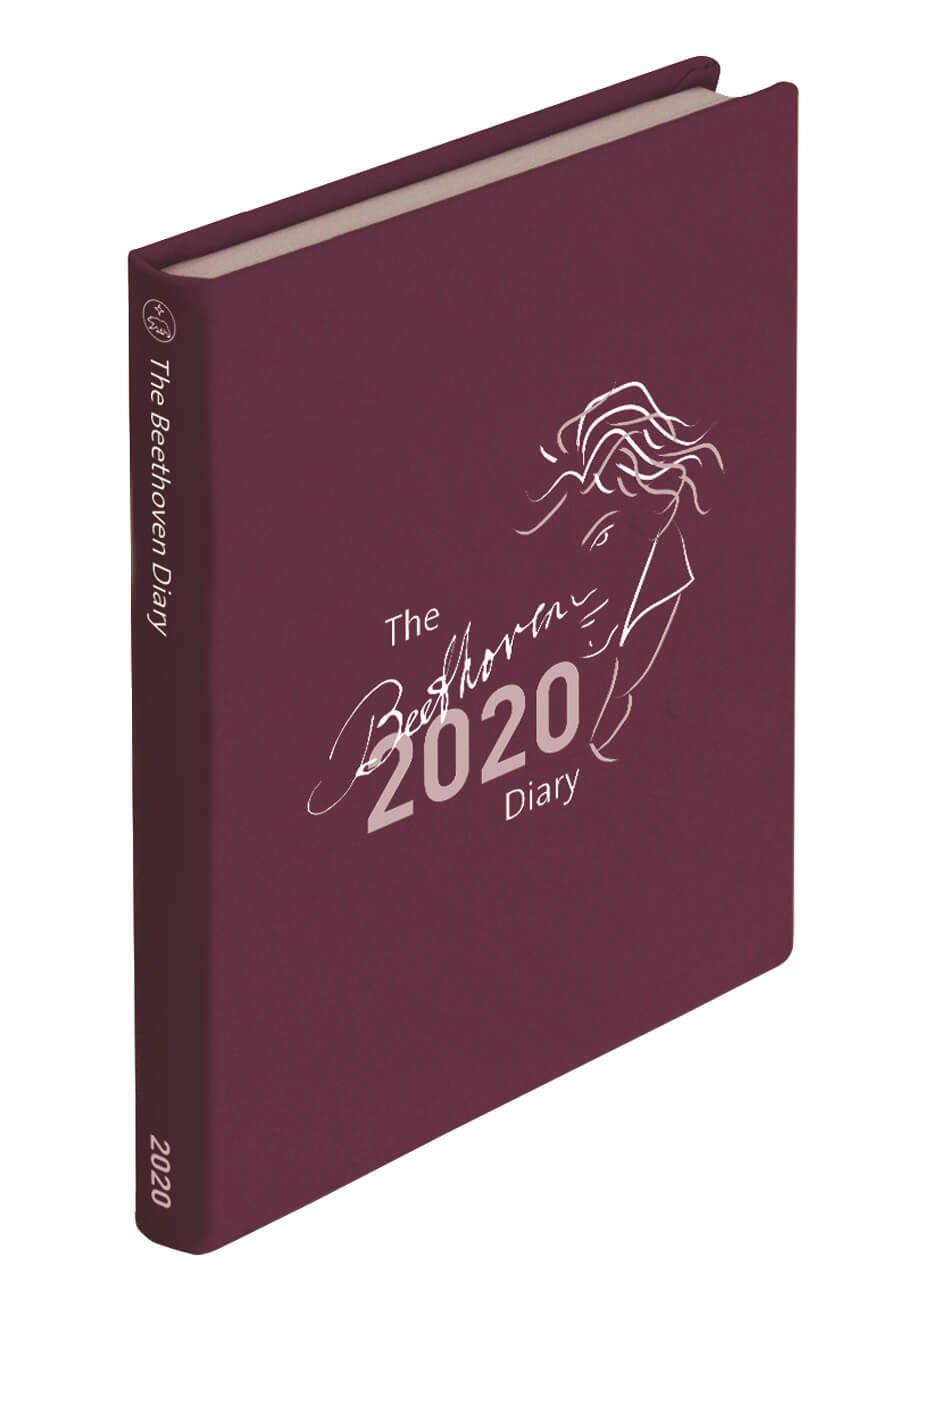 The Beethoven 2020 Diary